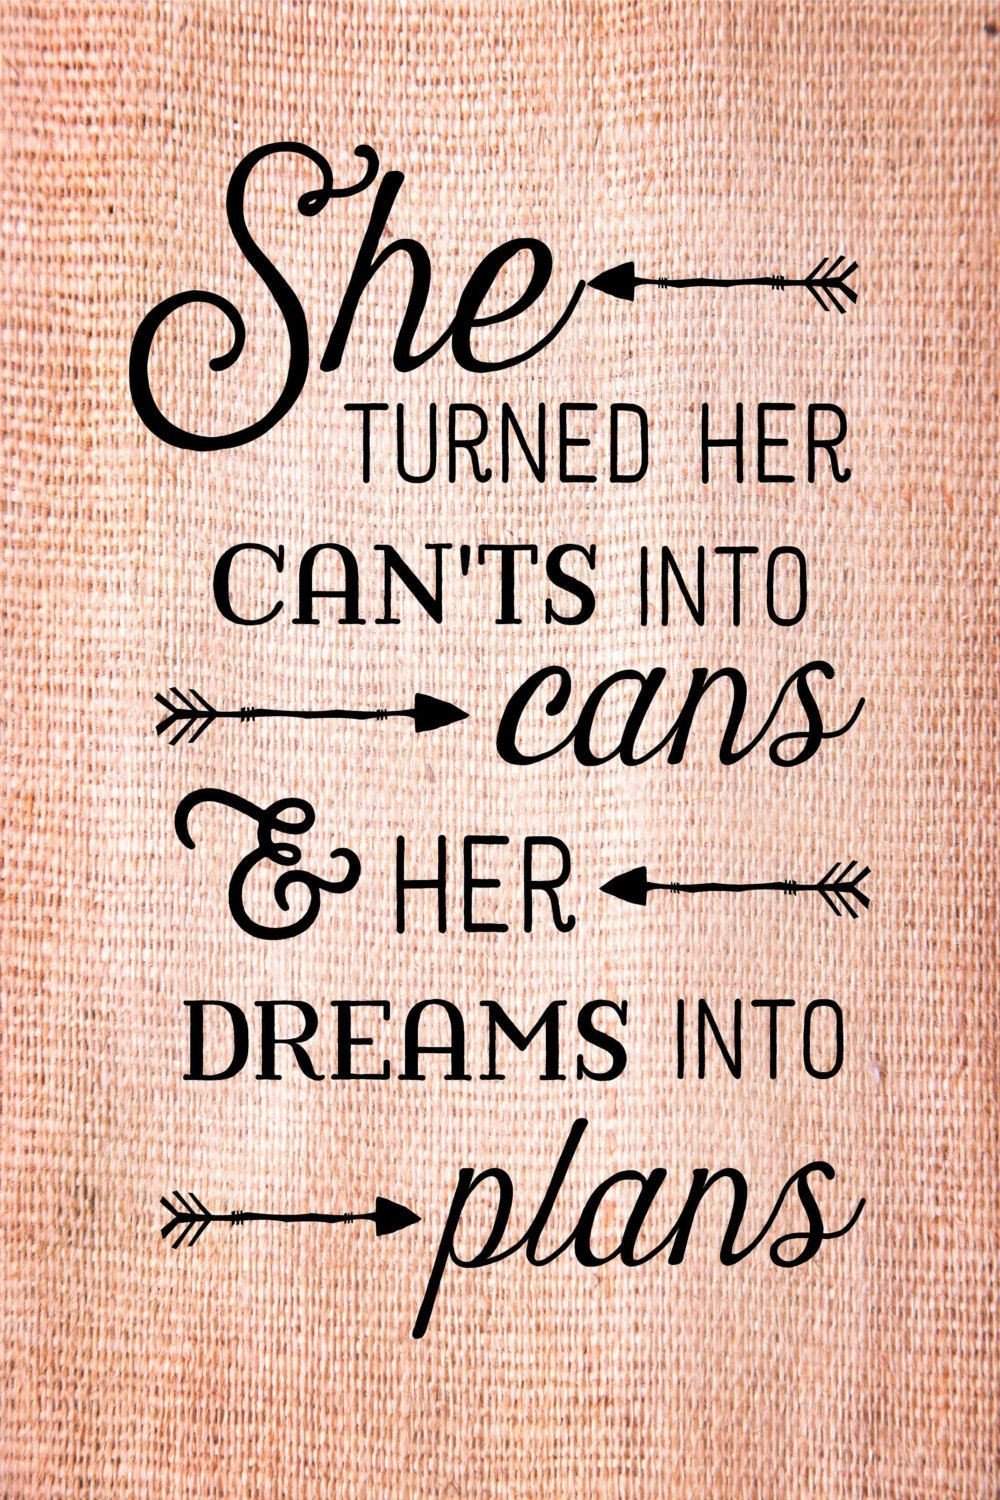 College Graduation Quote  Graduation Gift She turned her can ts into cans dreams